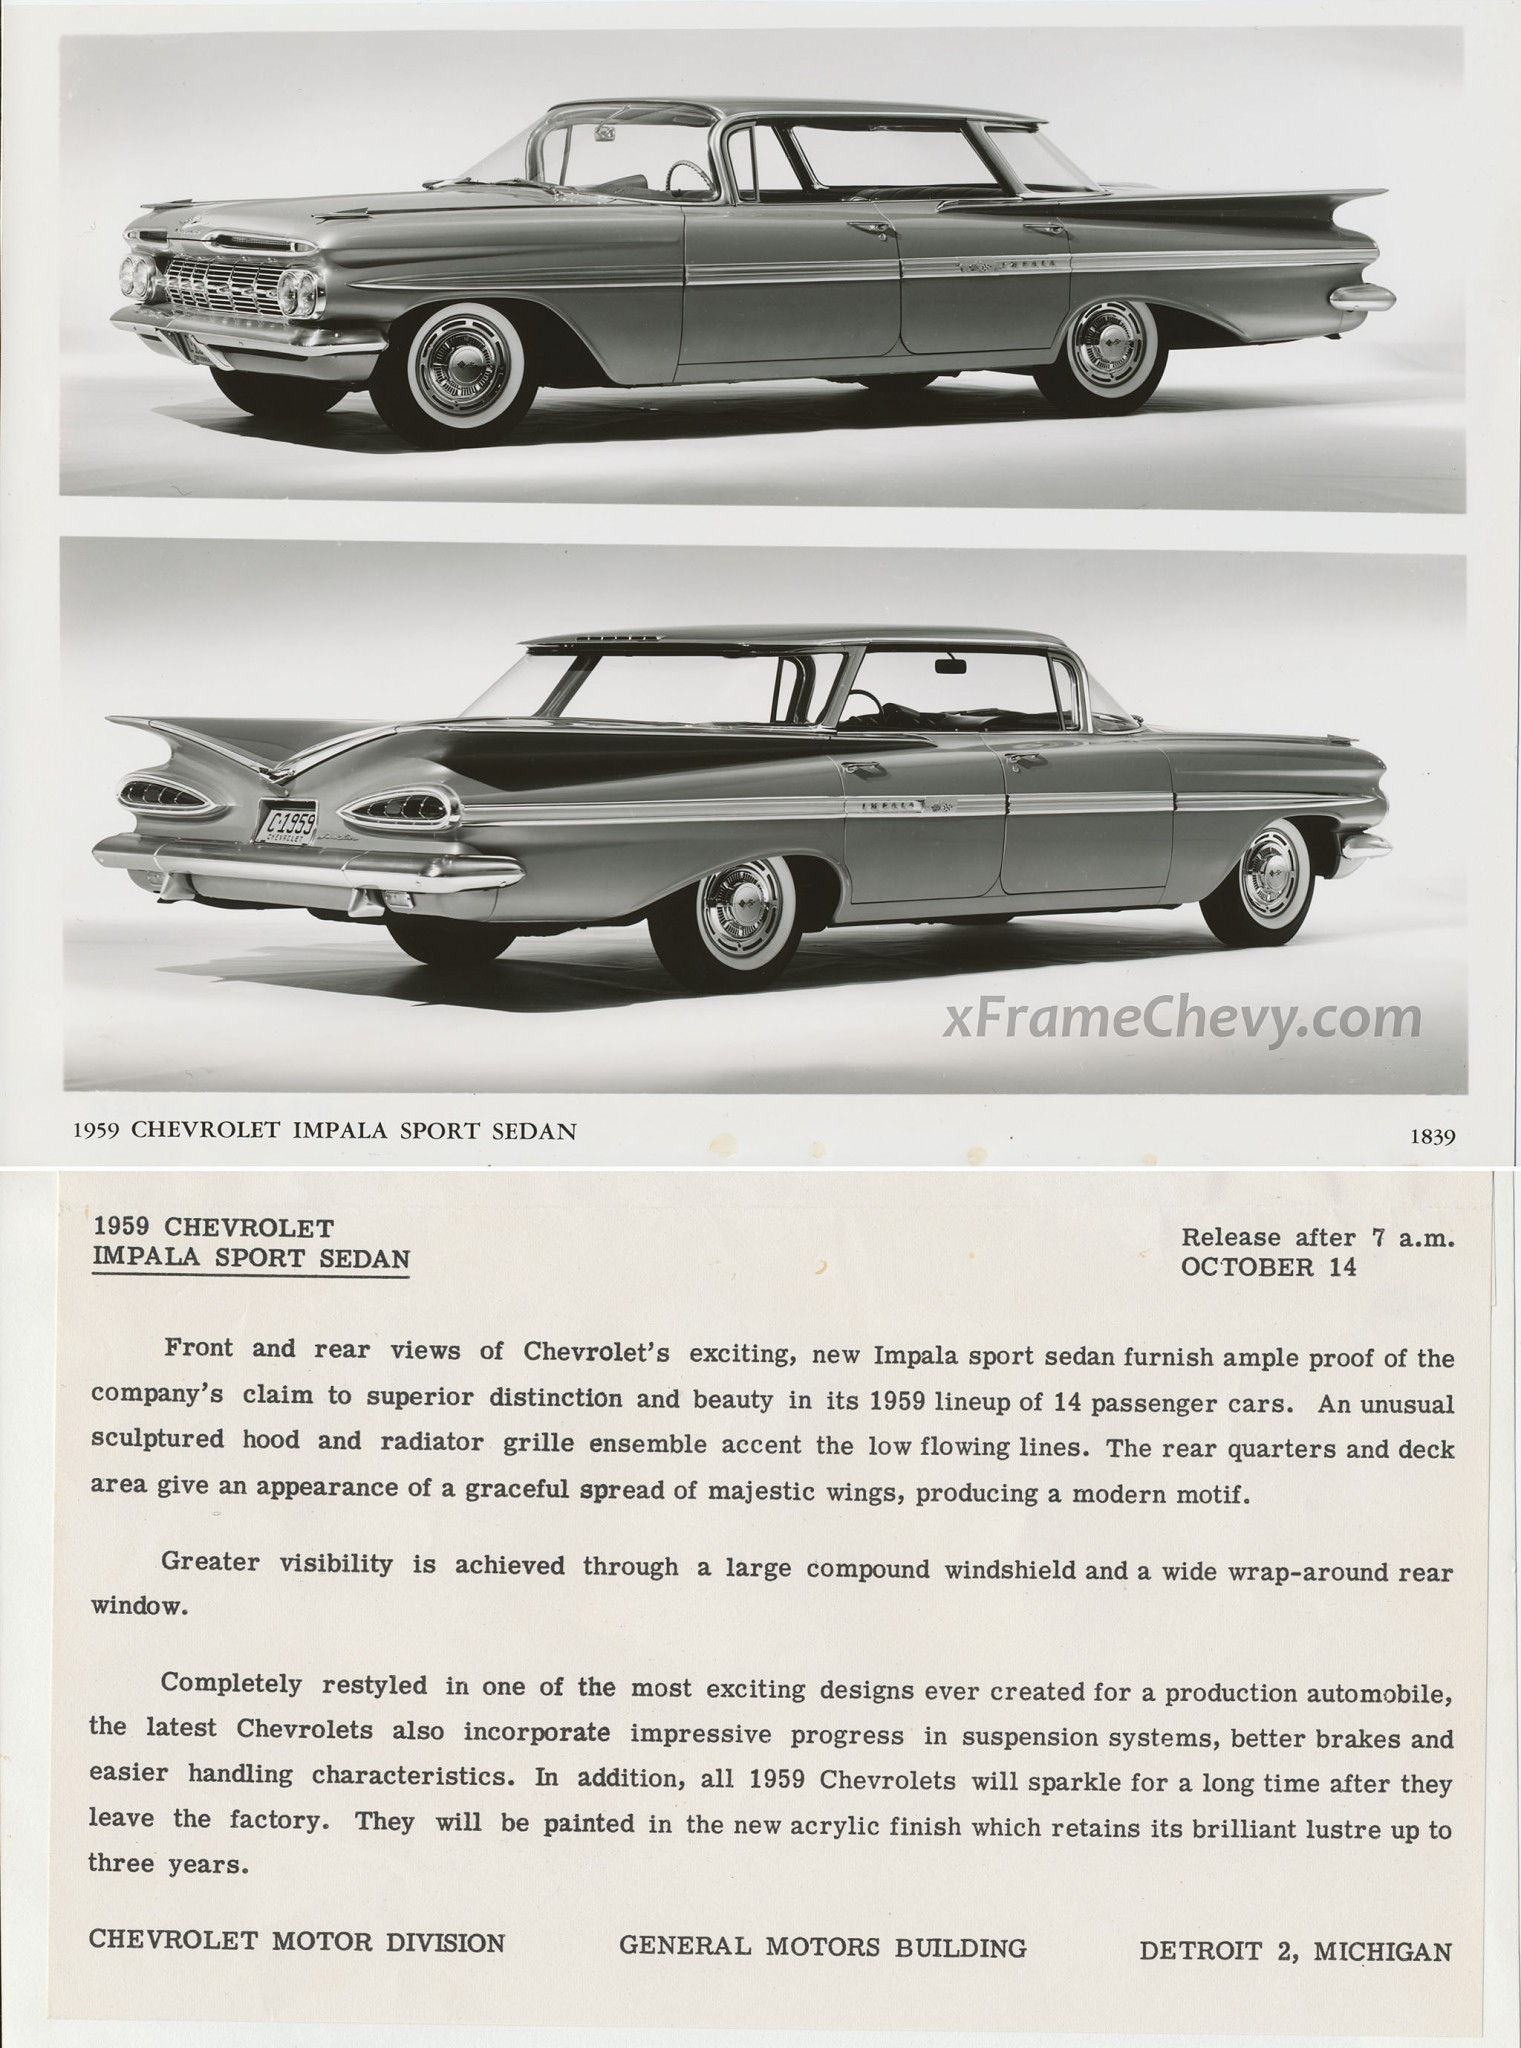 photo - GM Photographic - 1959 Impala Sport Sedan